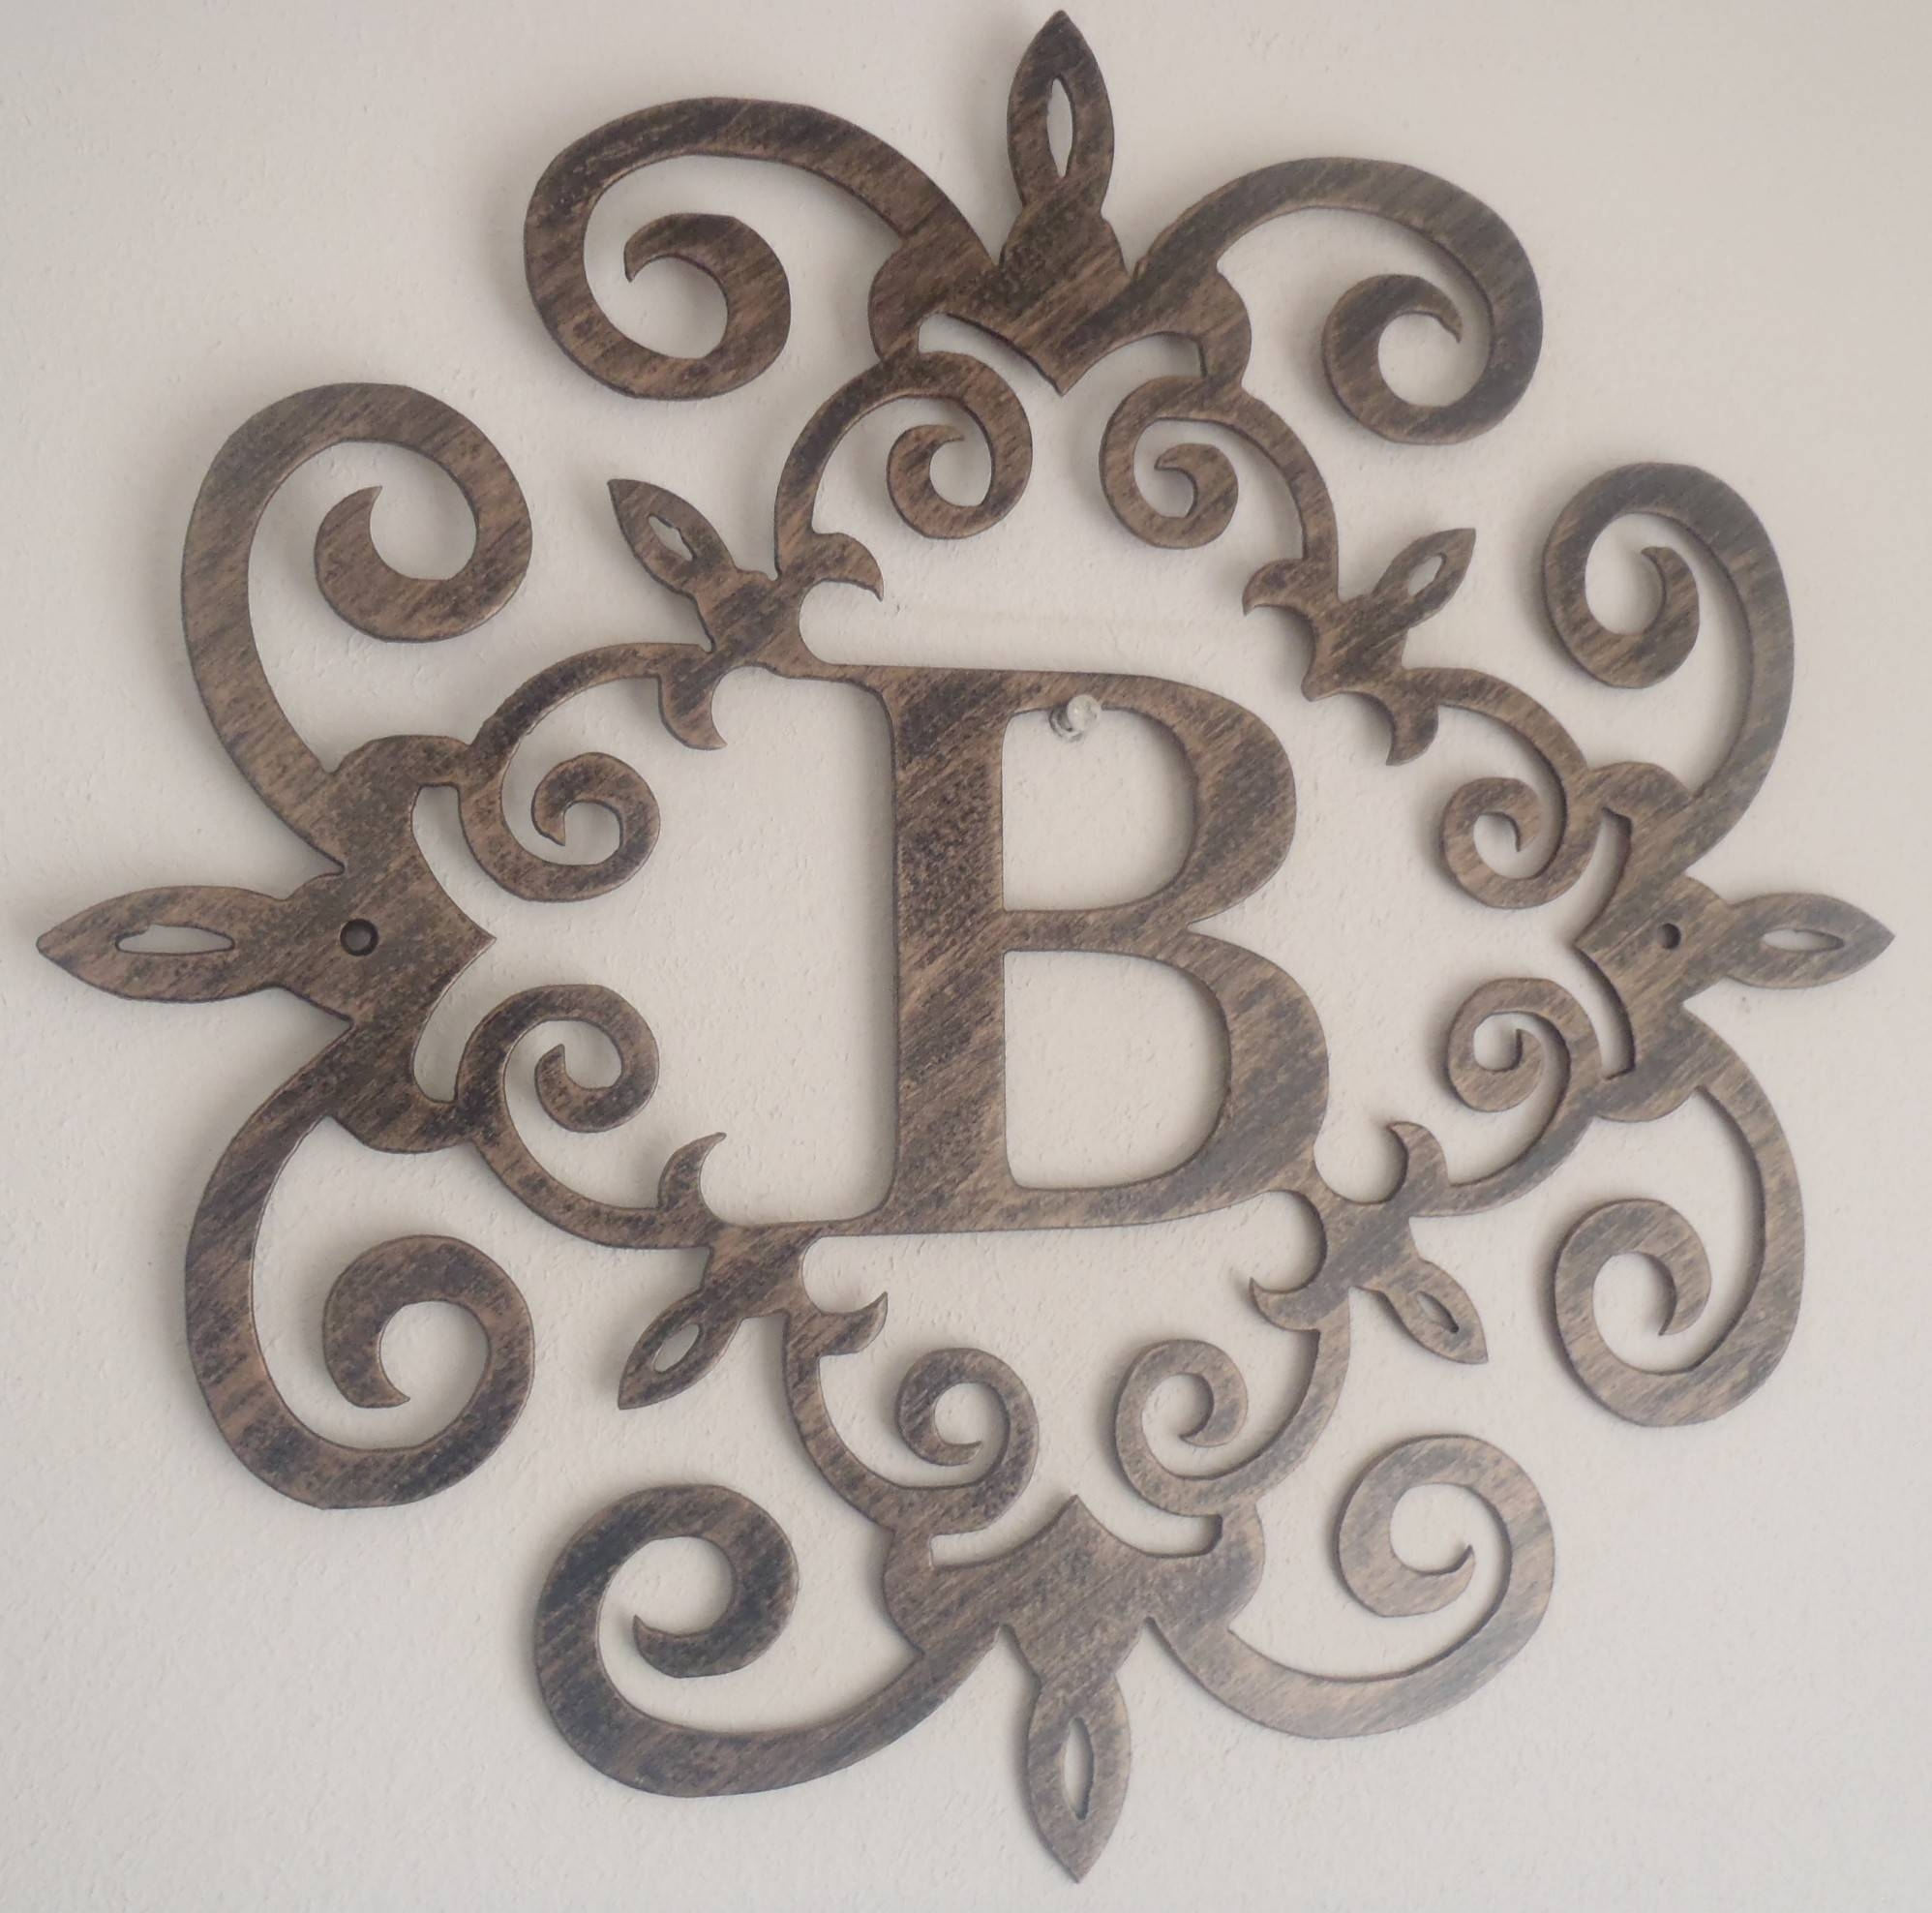 Metal Letters For Wall Decor In Most Up To Date Big Metal Wall Art (View 4 of 15)